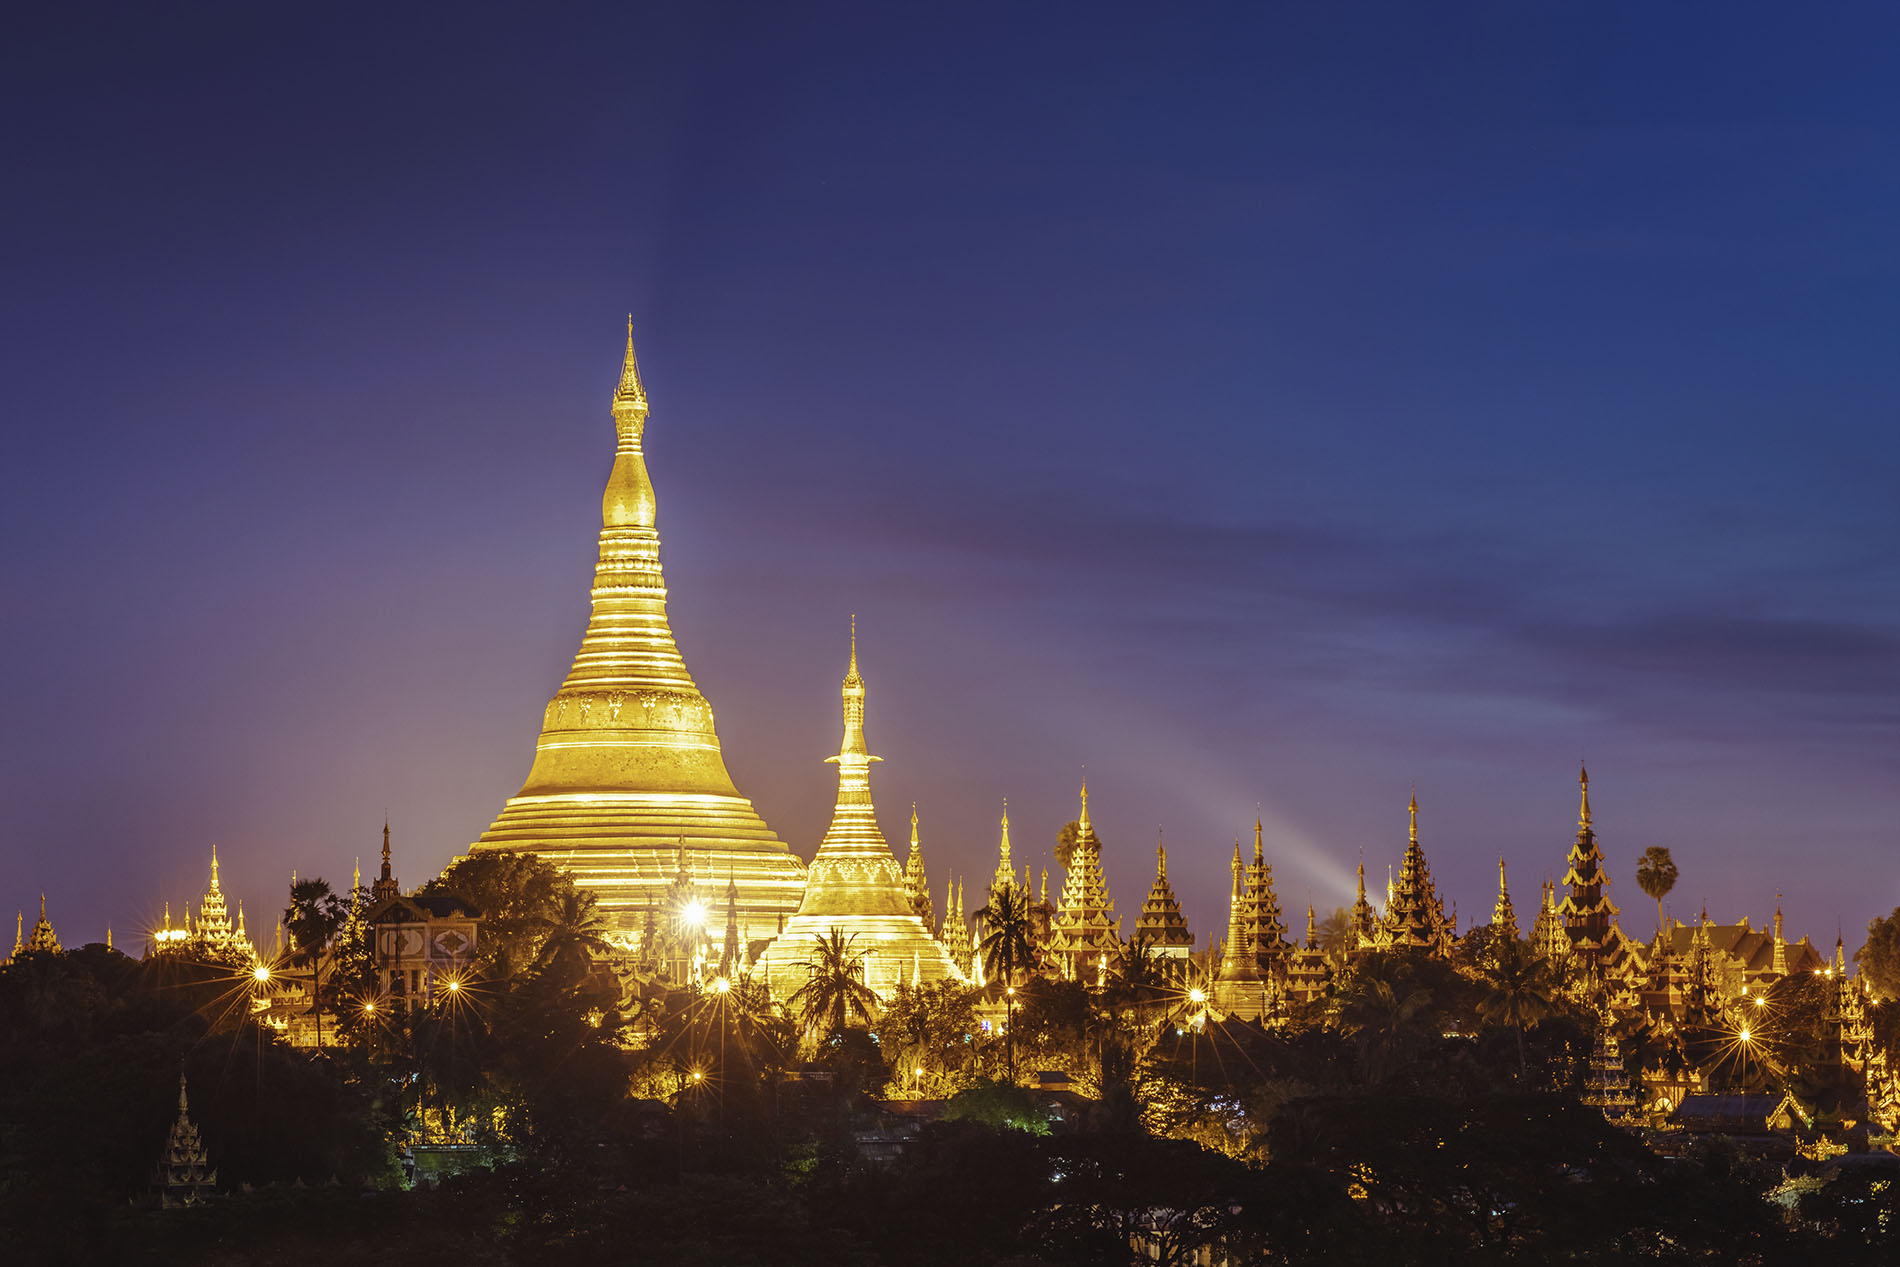 Swedagon Pagoda, Myanmar lit up at night